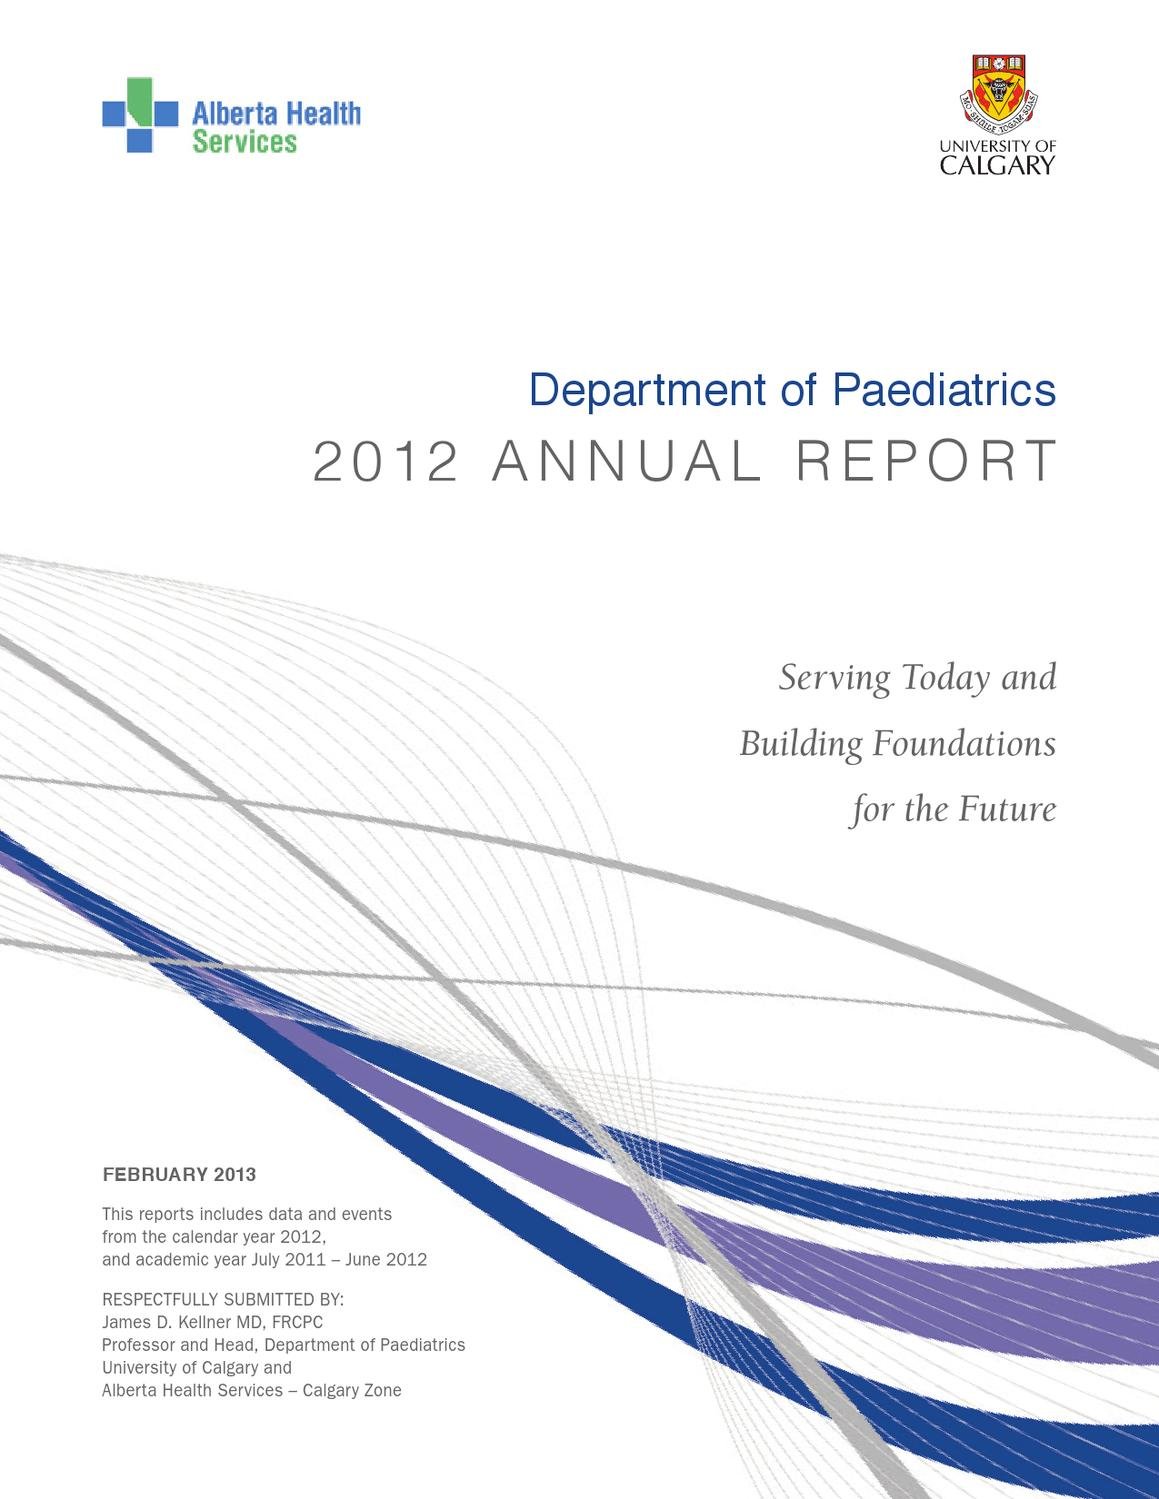 Paediatric Dept  Annual Report - 2012 by Department of Paediatrics